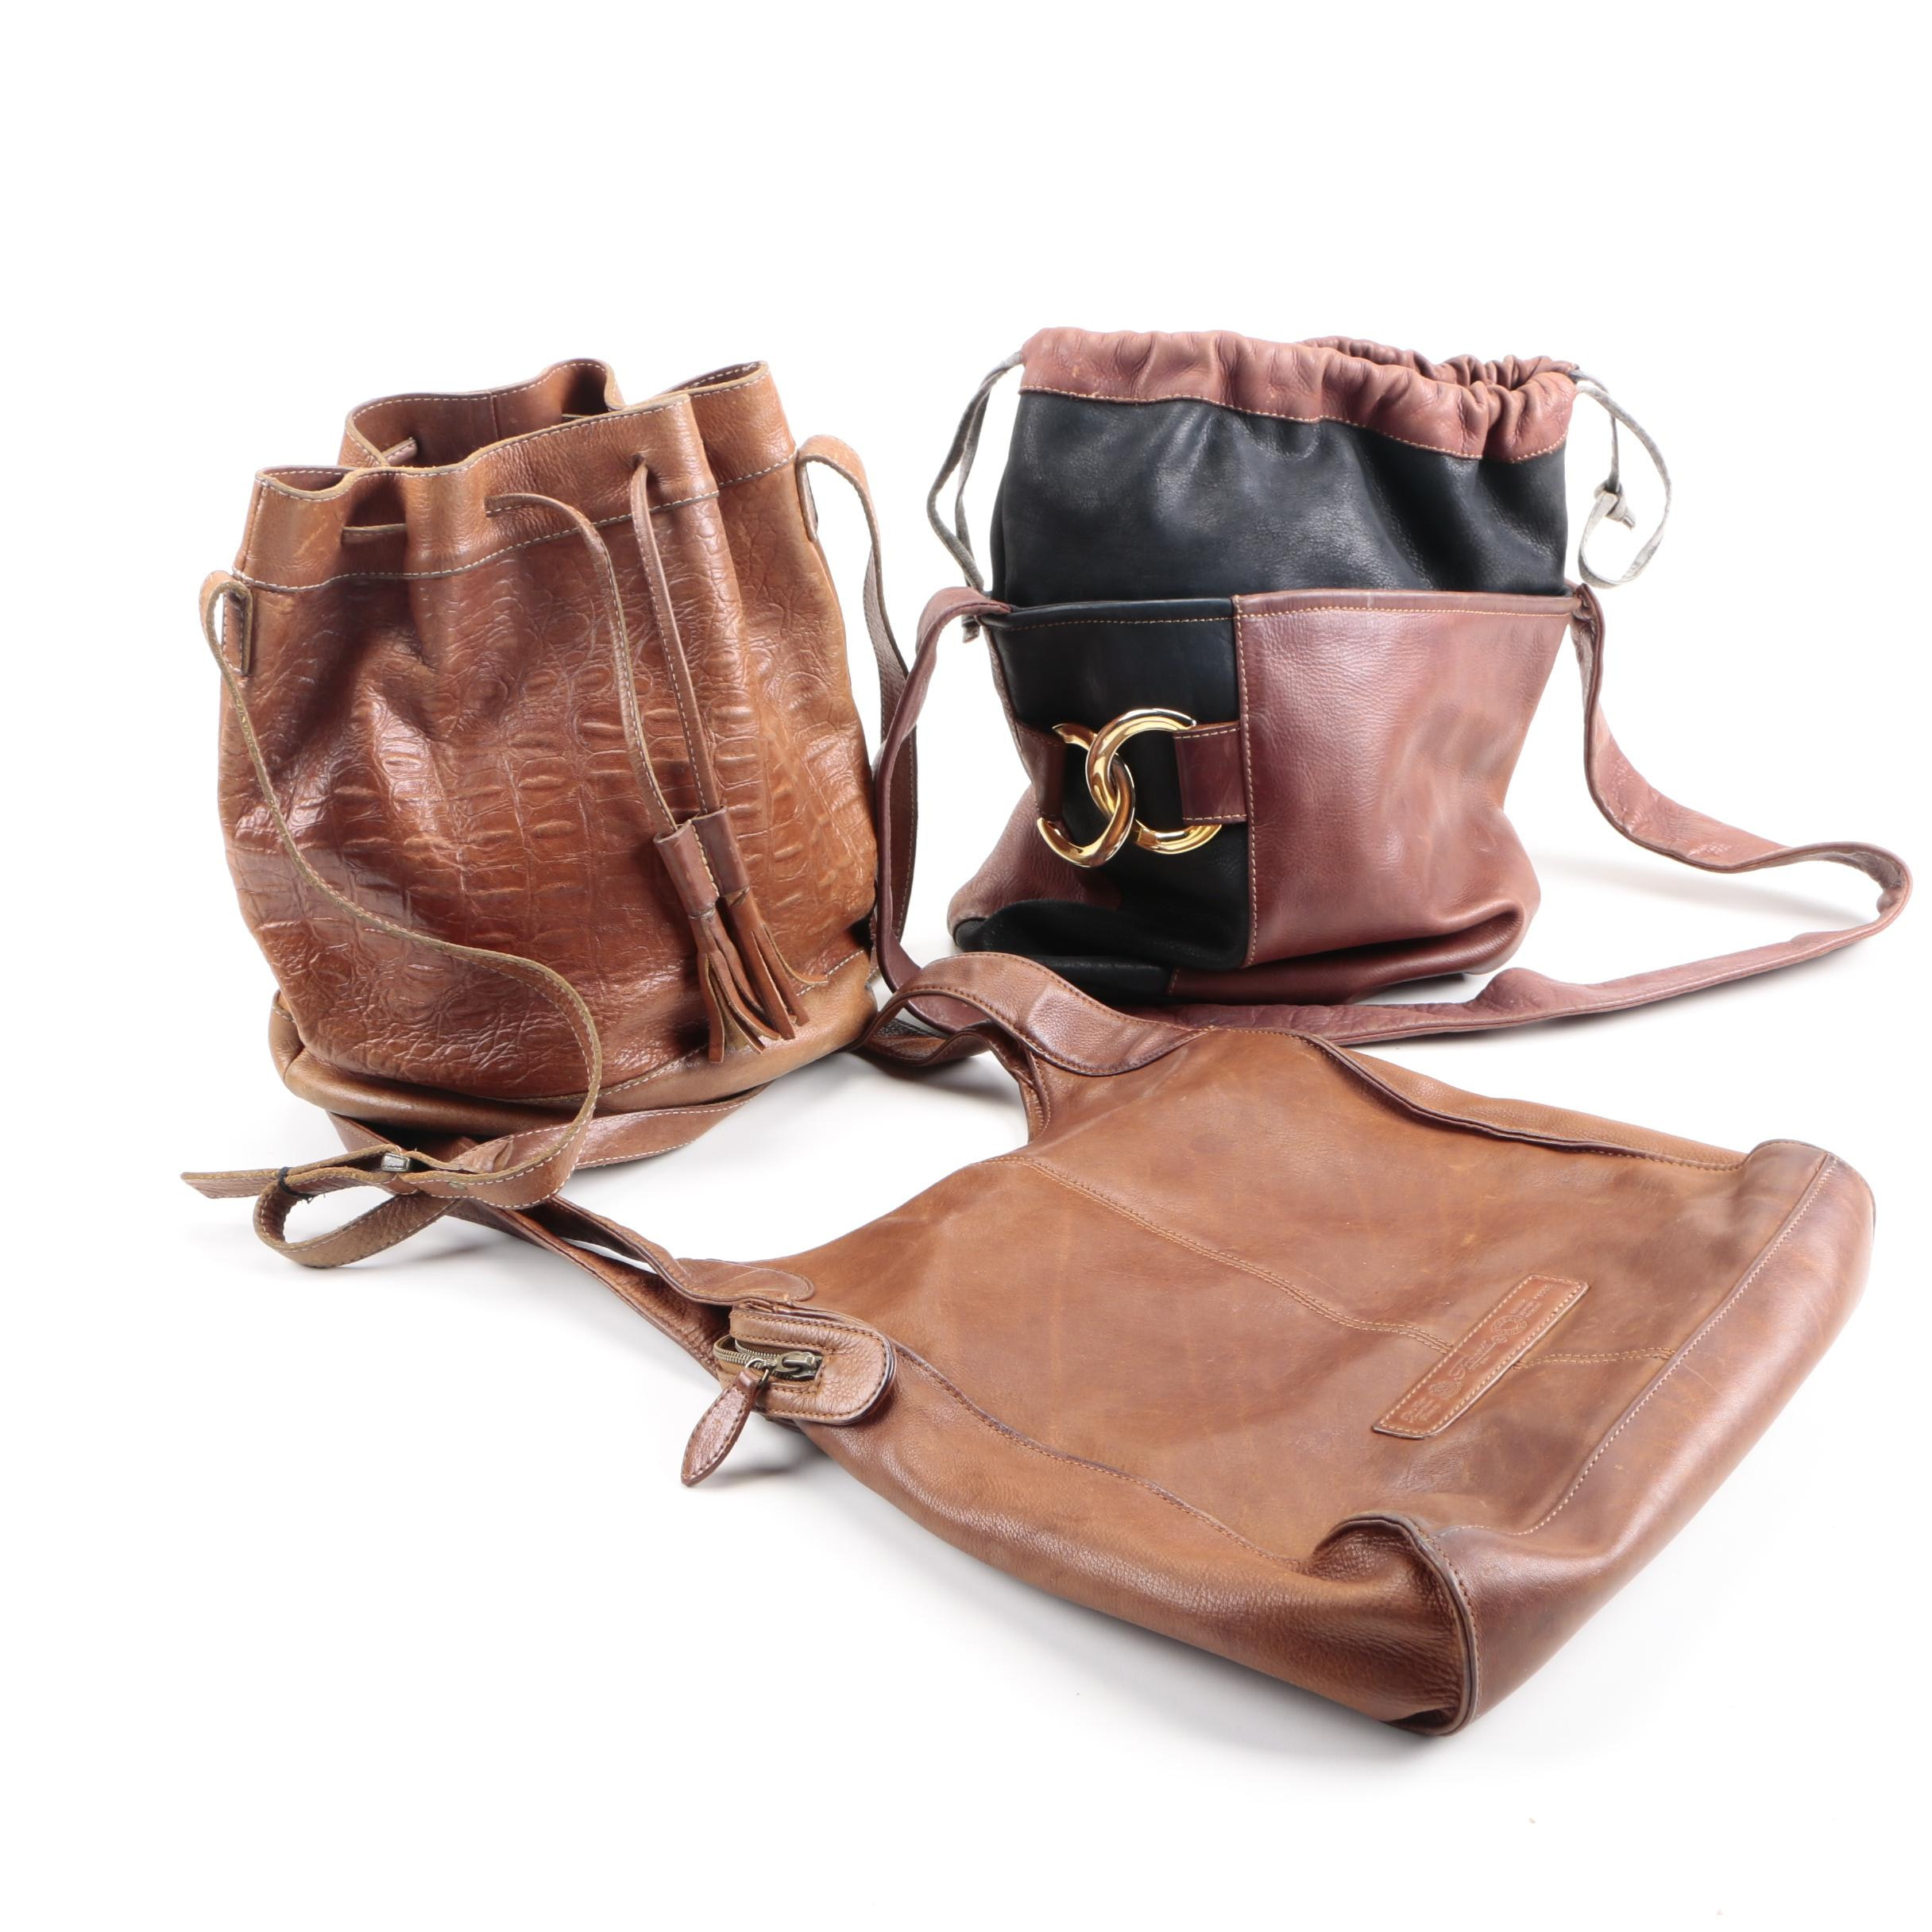 Women's Leather Handbags Including Fossil